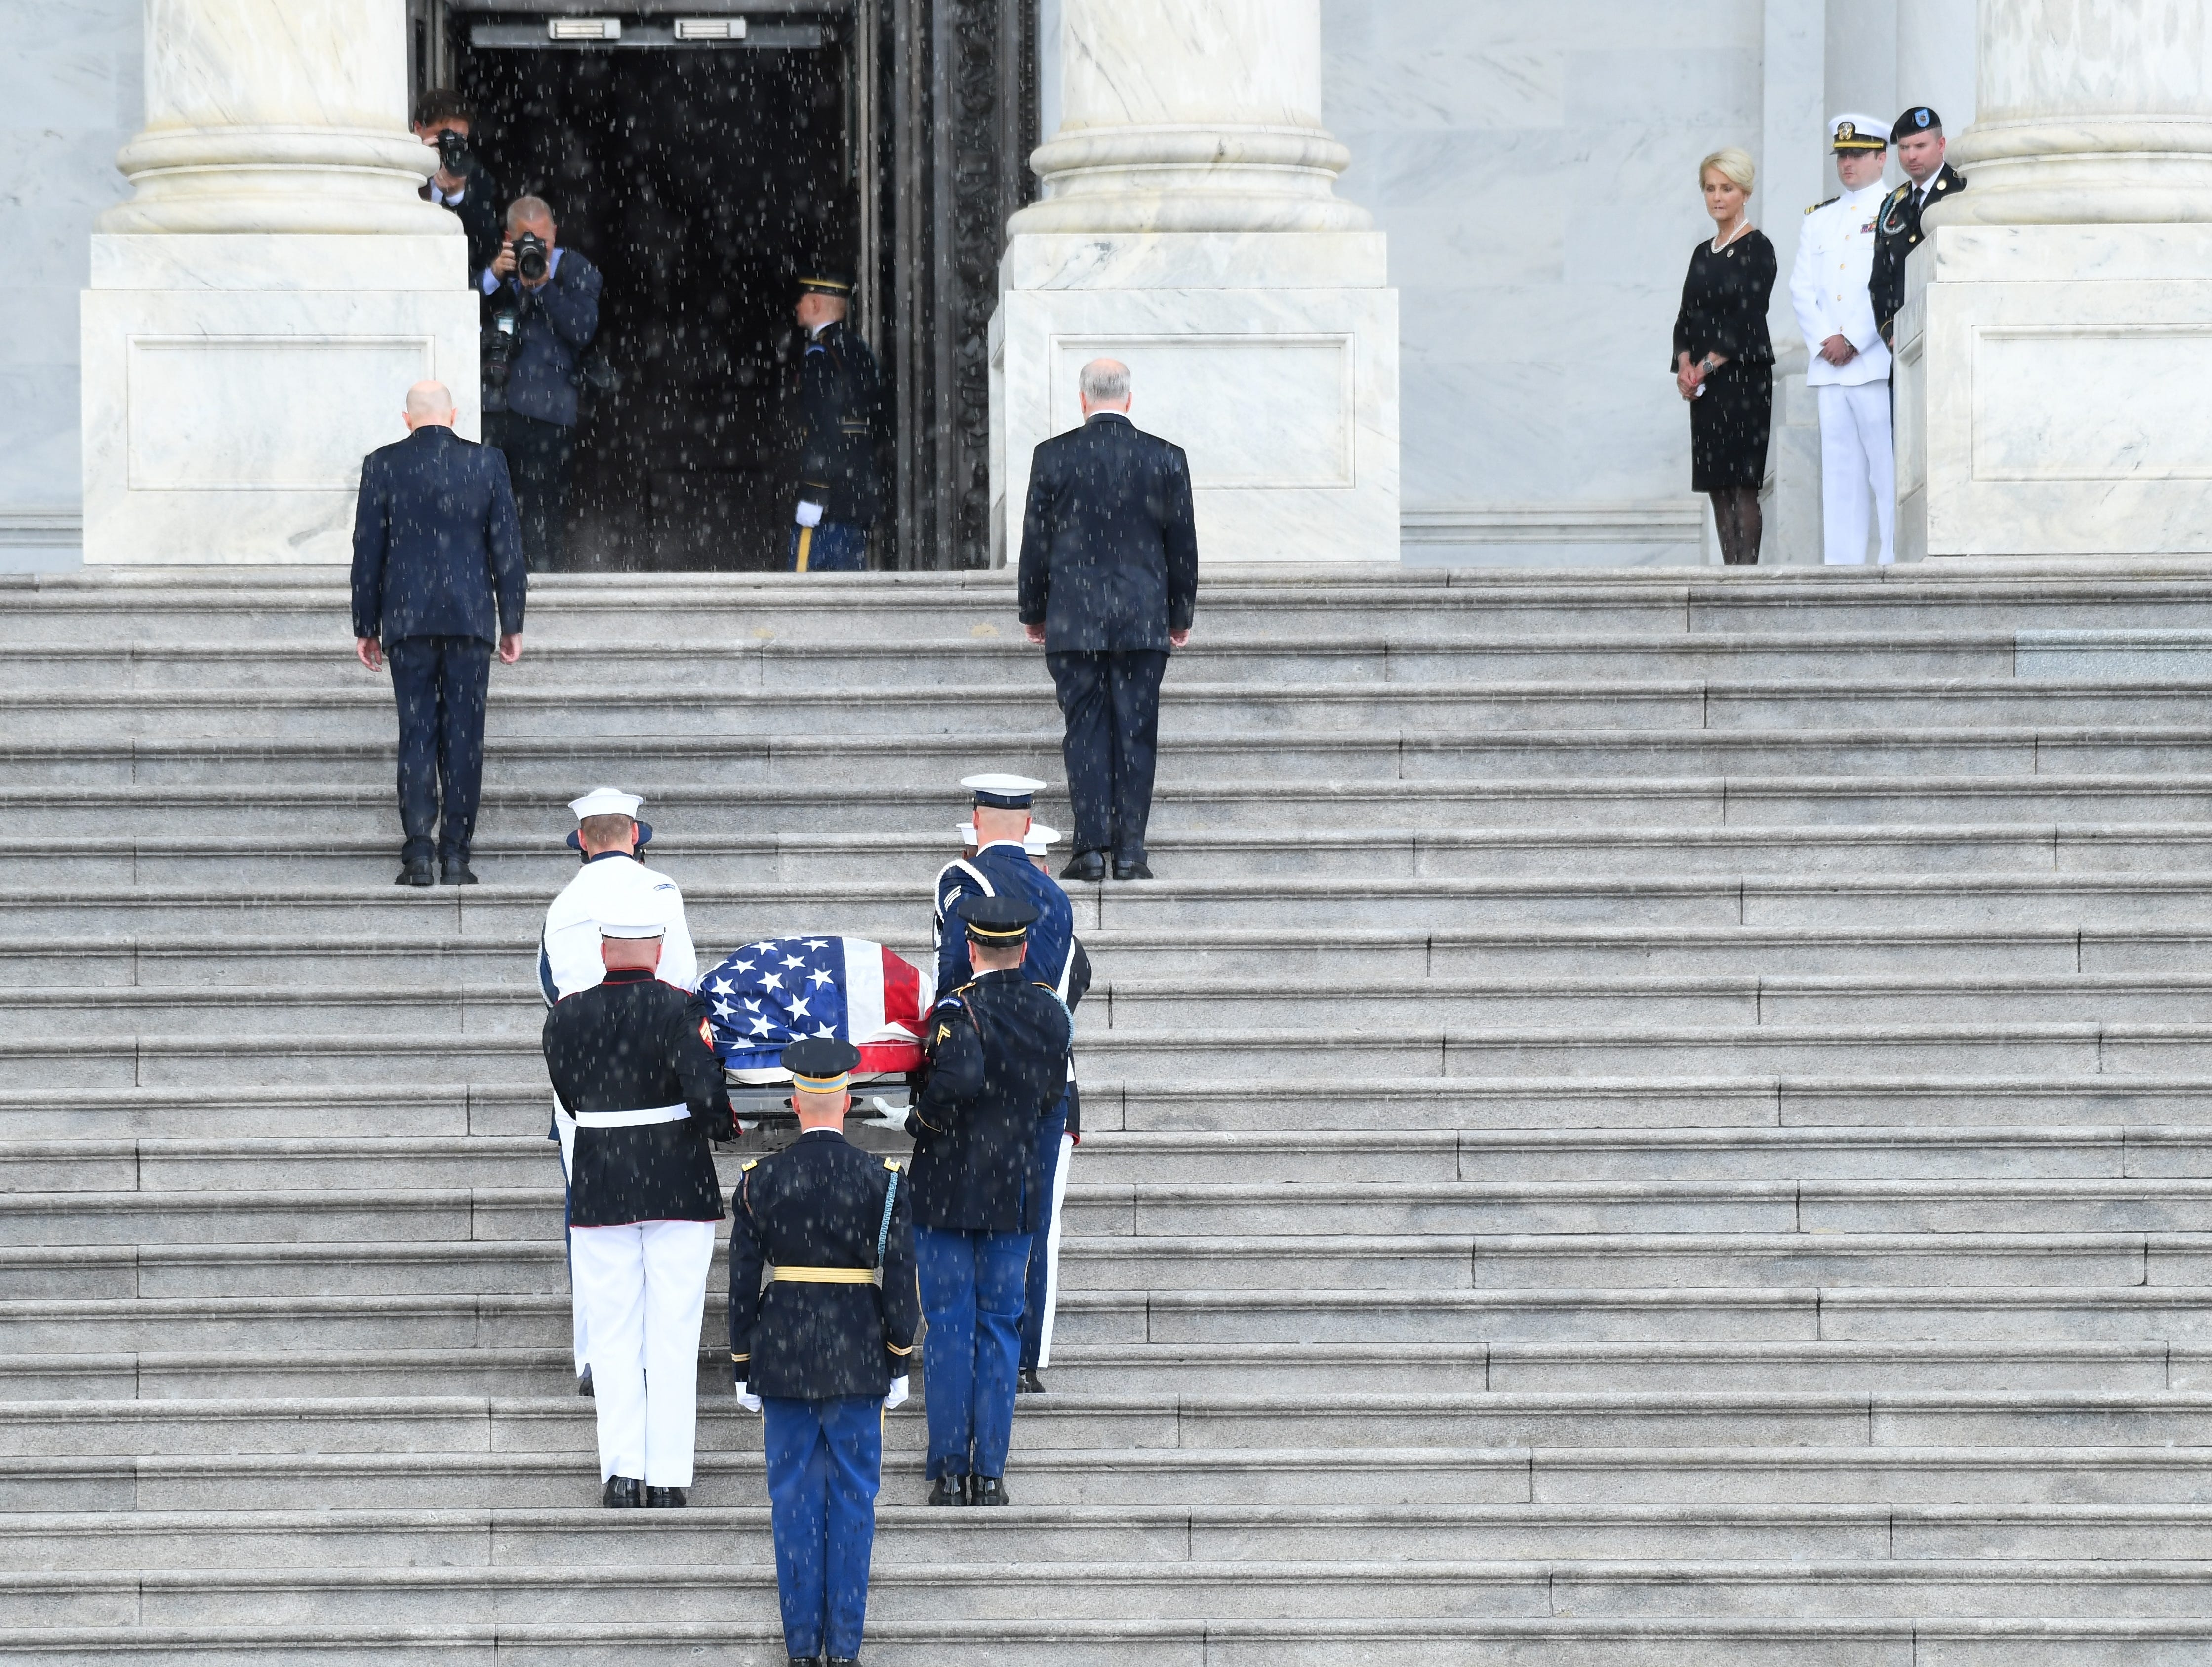 Aug. 31, 2018: The casket of John McCain arrives at the U.S. Capitol  in Washington while his wife Cindy McCain along with her two sons Jack and Jimmy McCain look on.